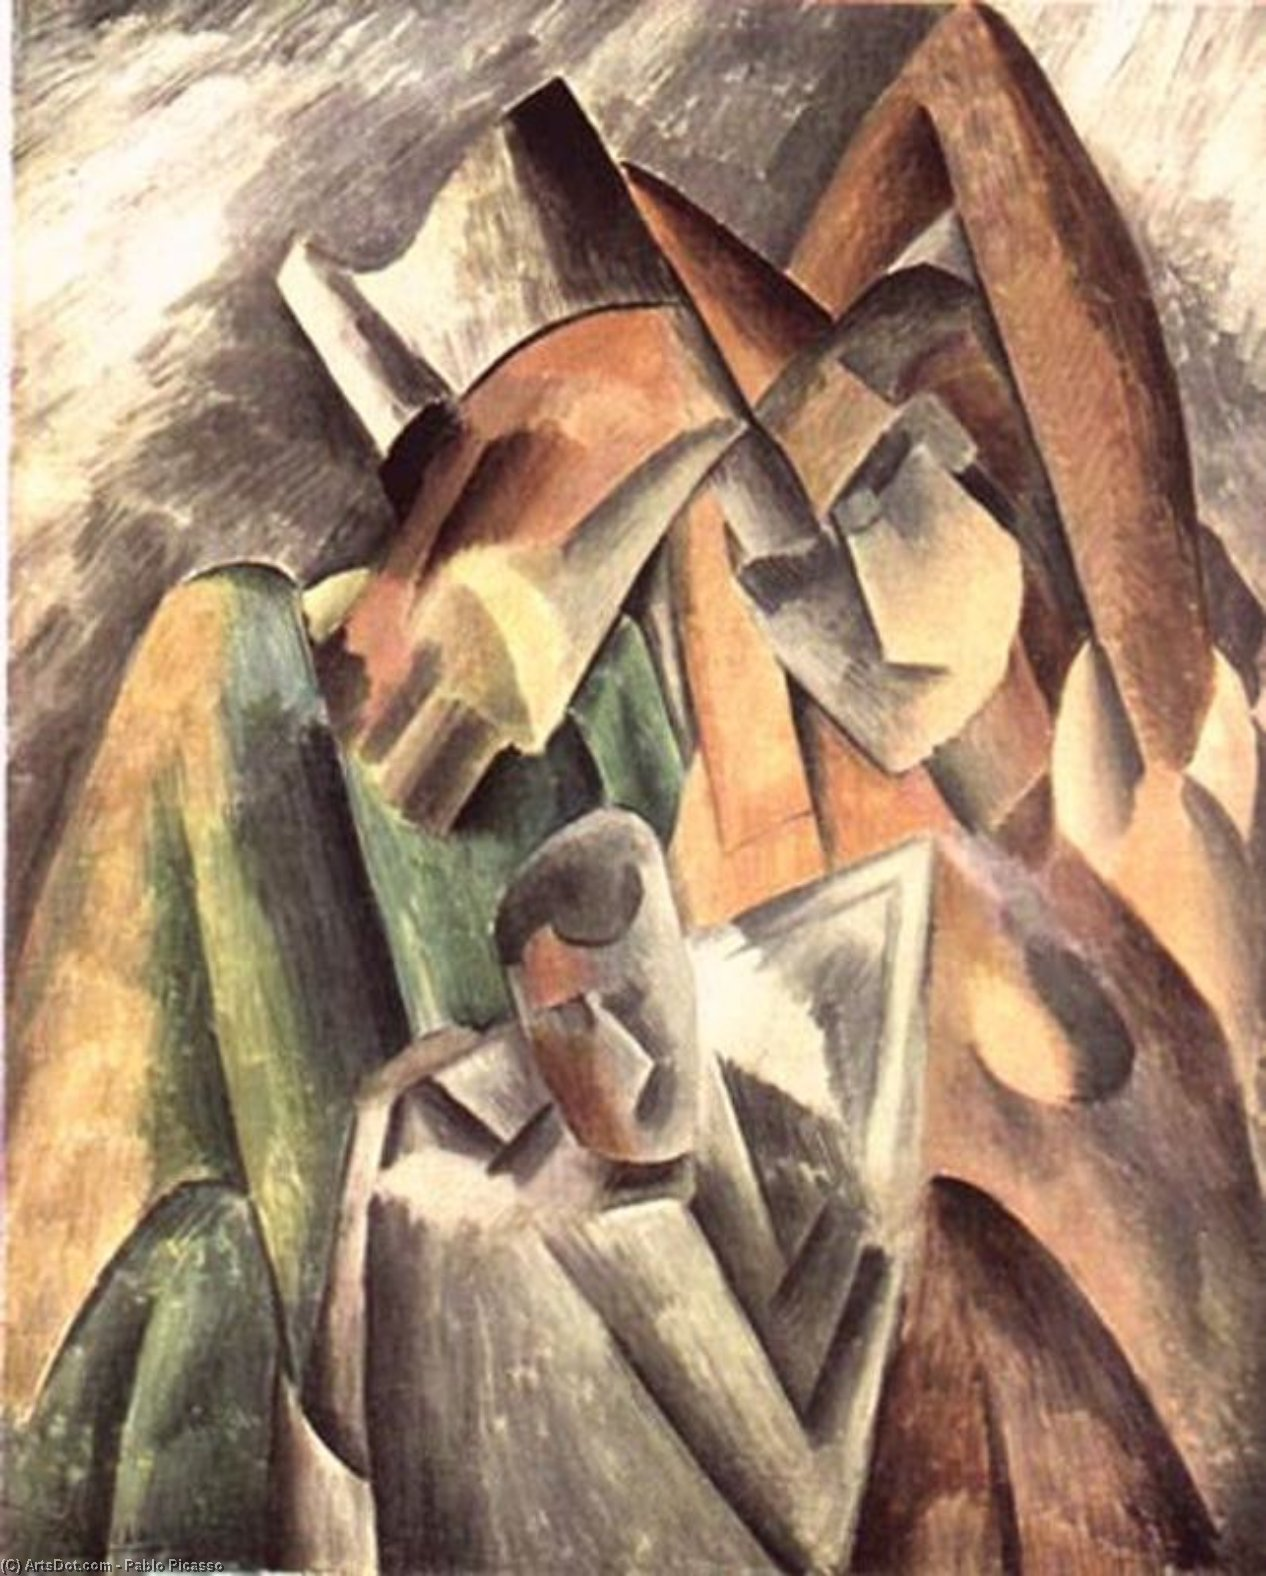 Wikioo.org - The Encyclopedia of Fine Arts - Painting, Artwork by Pablo Picasso - Harlequin and his family